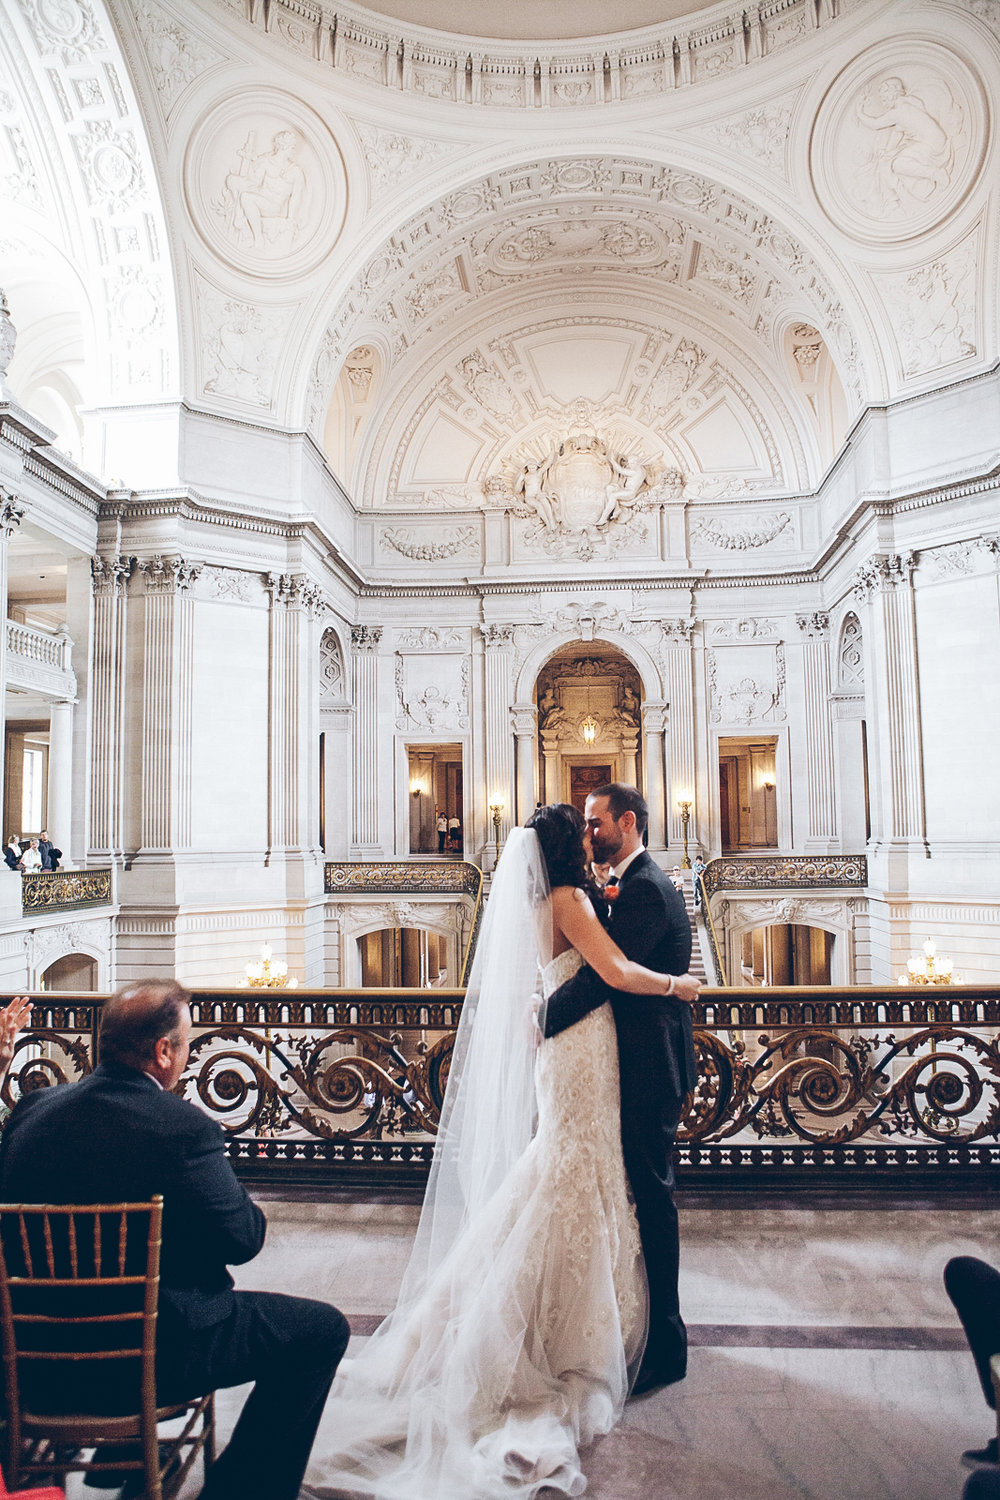 San_francisco_city_hall_wedding_photography_meegan_travis_ebony_siovhan_bokeh_photography_22.jpg